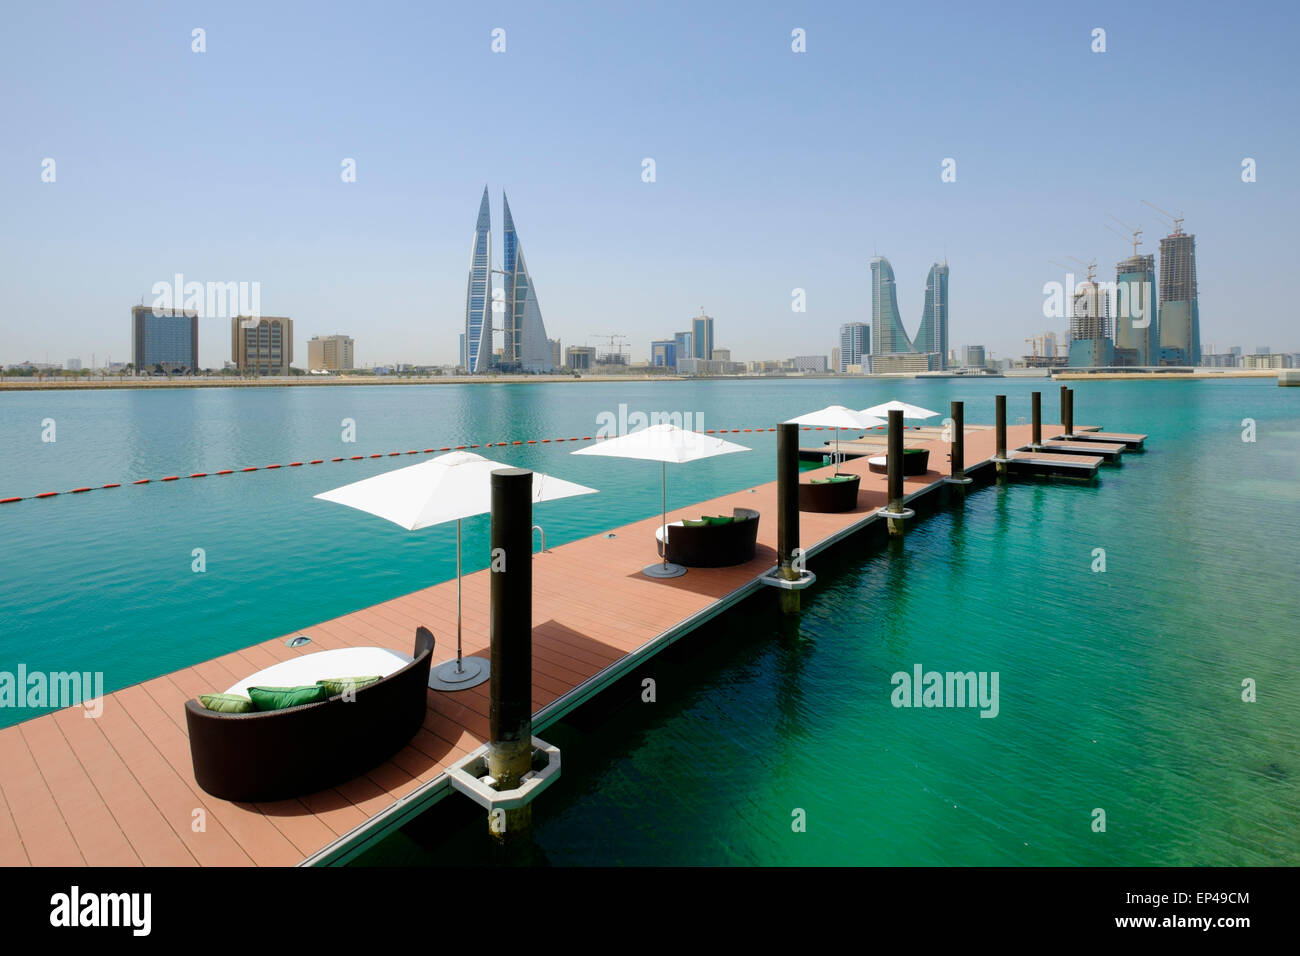 View of Bahrain skyline and Bahrain Bay from new Four Seasons Bahrain Bay luxury Hotel in Bahrain - Stock Image